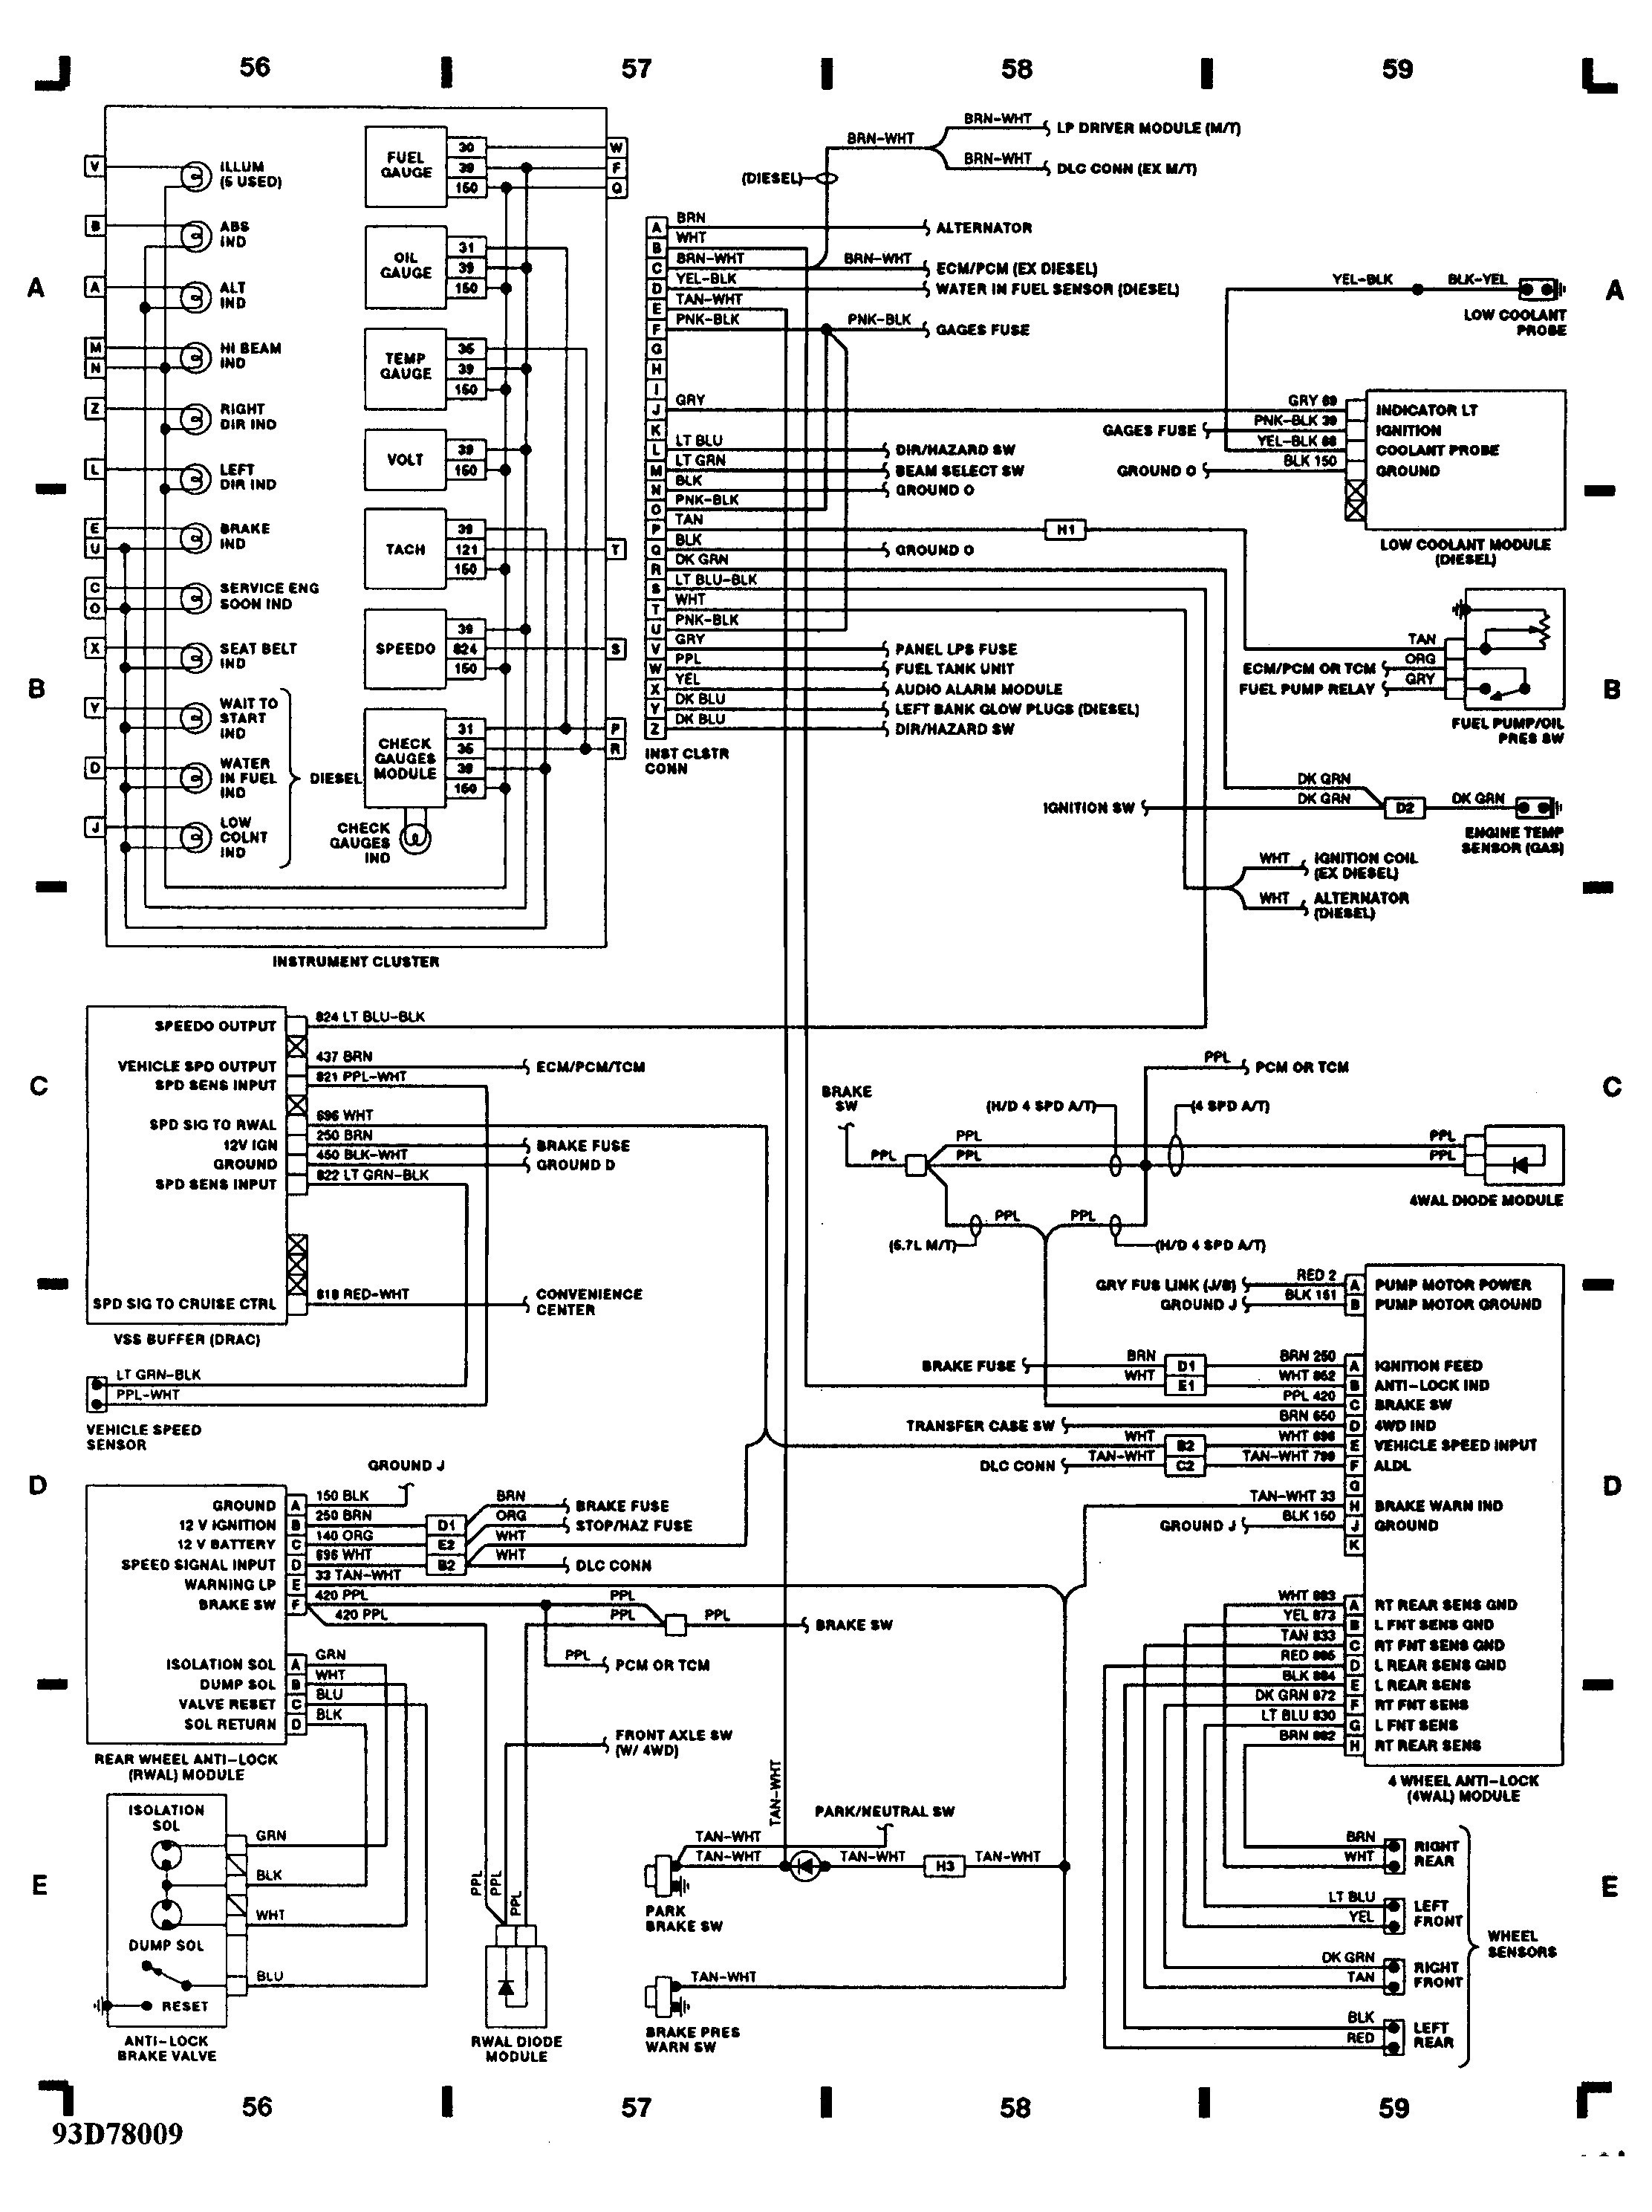 Gm 3 5 V6 Engine Diagram Wiring For Professional Of 1 Liter Todays Rh 17 11 12 1813weddingbarn Com 43 Vortec Chevy